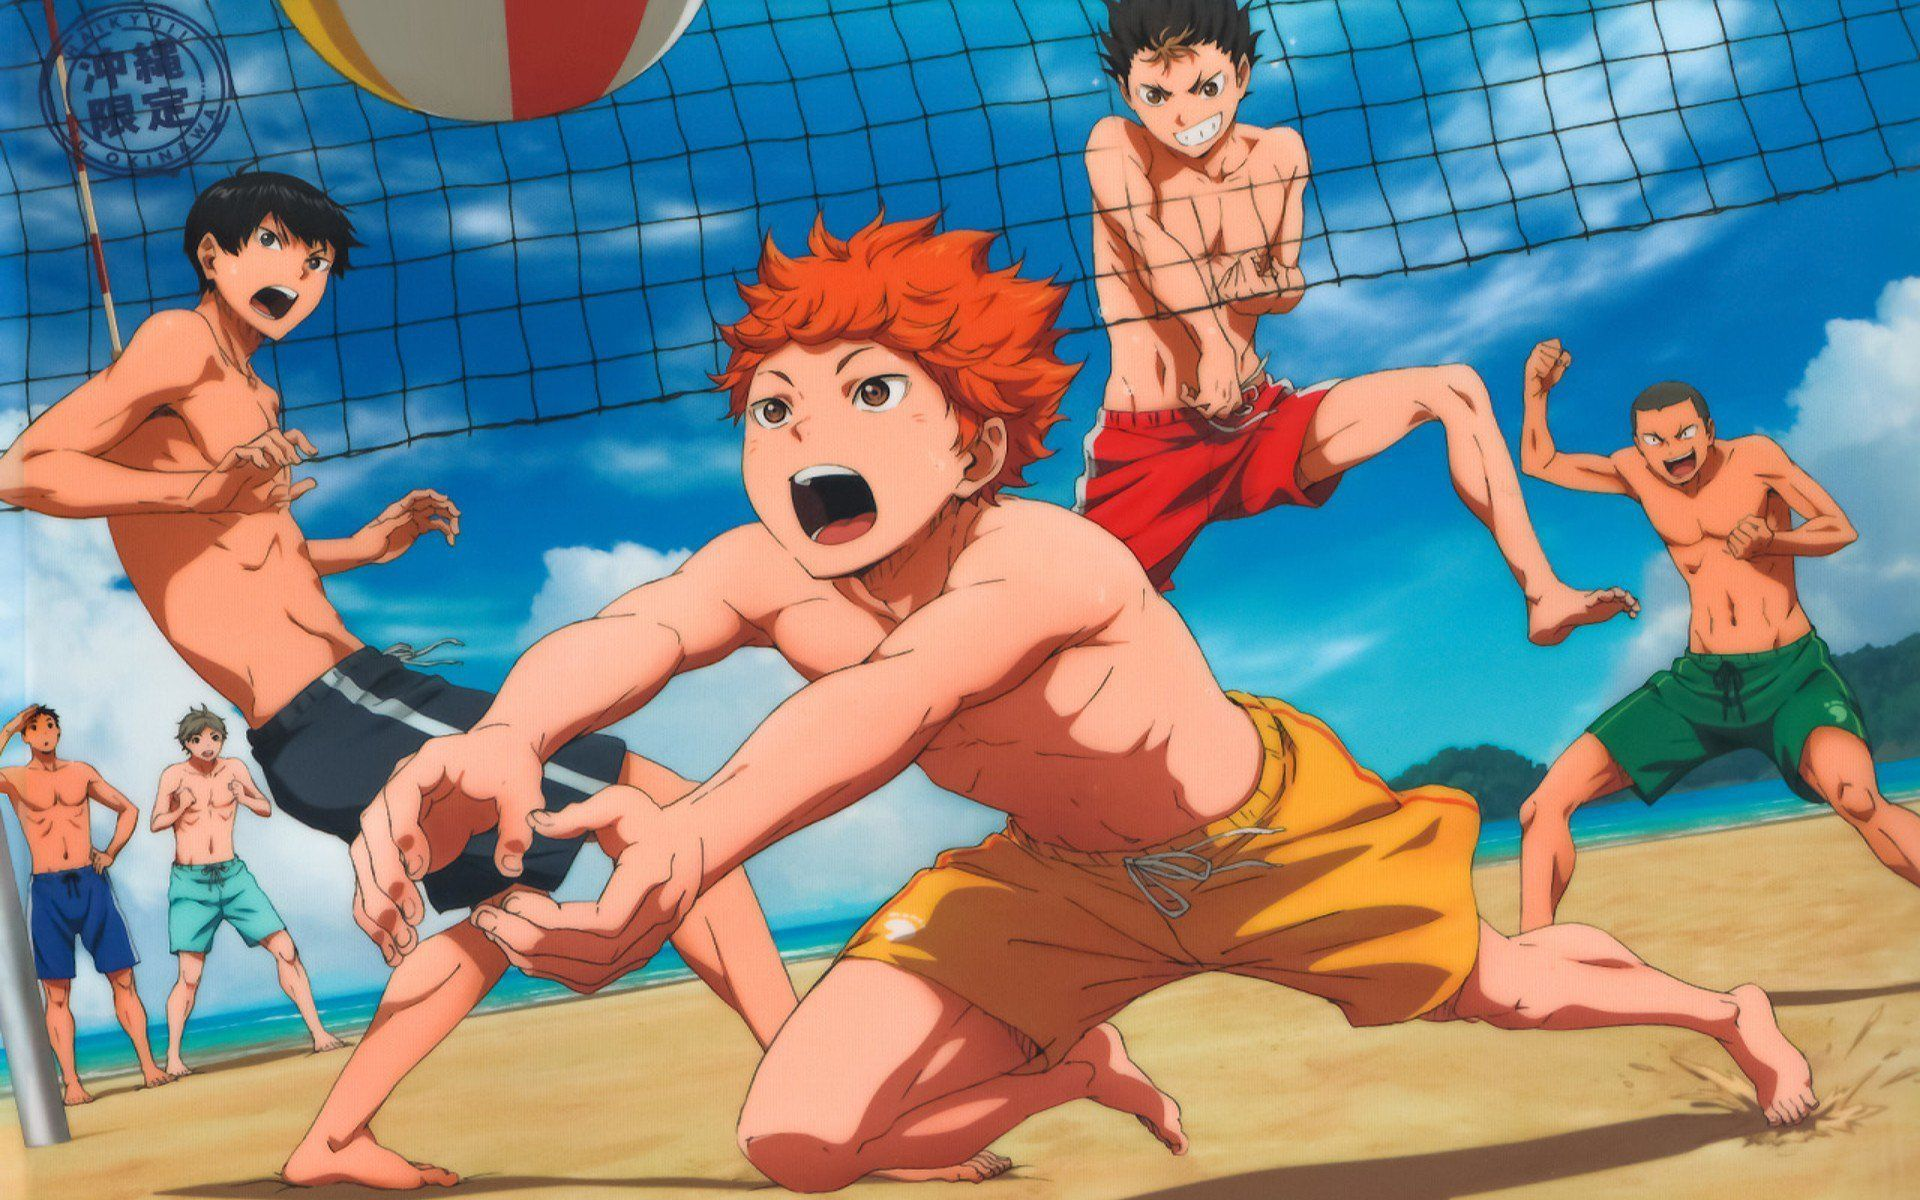 Olympic Games Haikyuu Beach Volleyball Haikyuu Beach Volleyball Beach Volleyball Hairstyles Beach Volleyball Poster In 2020 Haikyuu Karasuno Haikyuu Haikyu